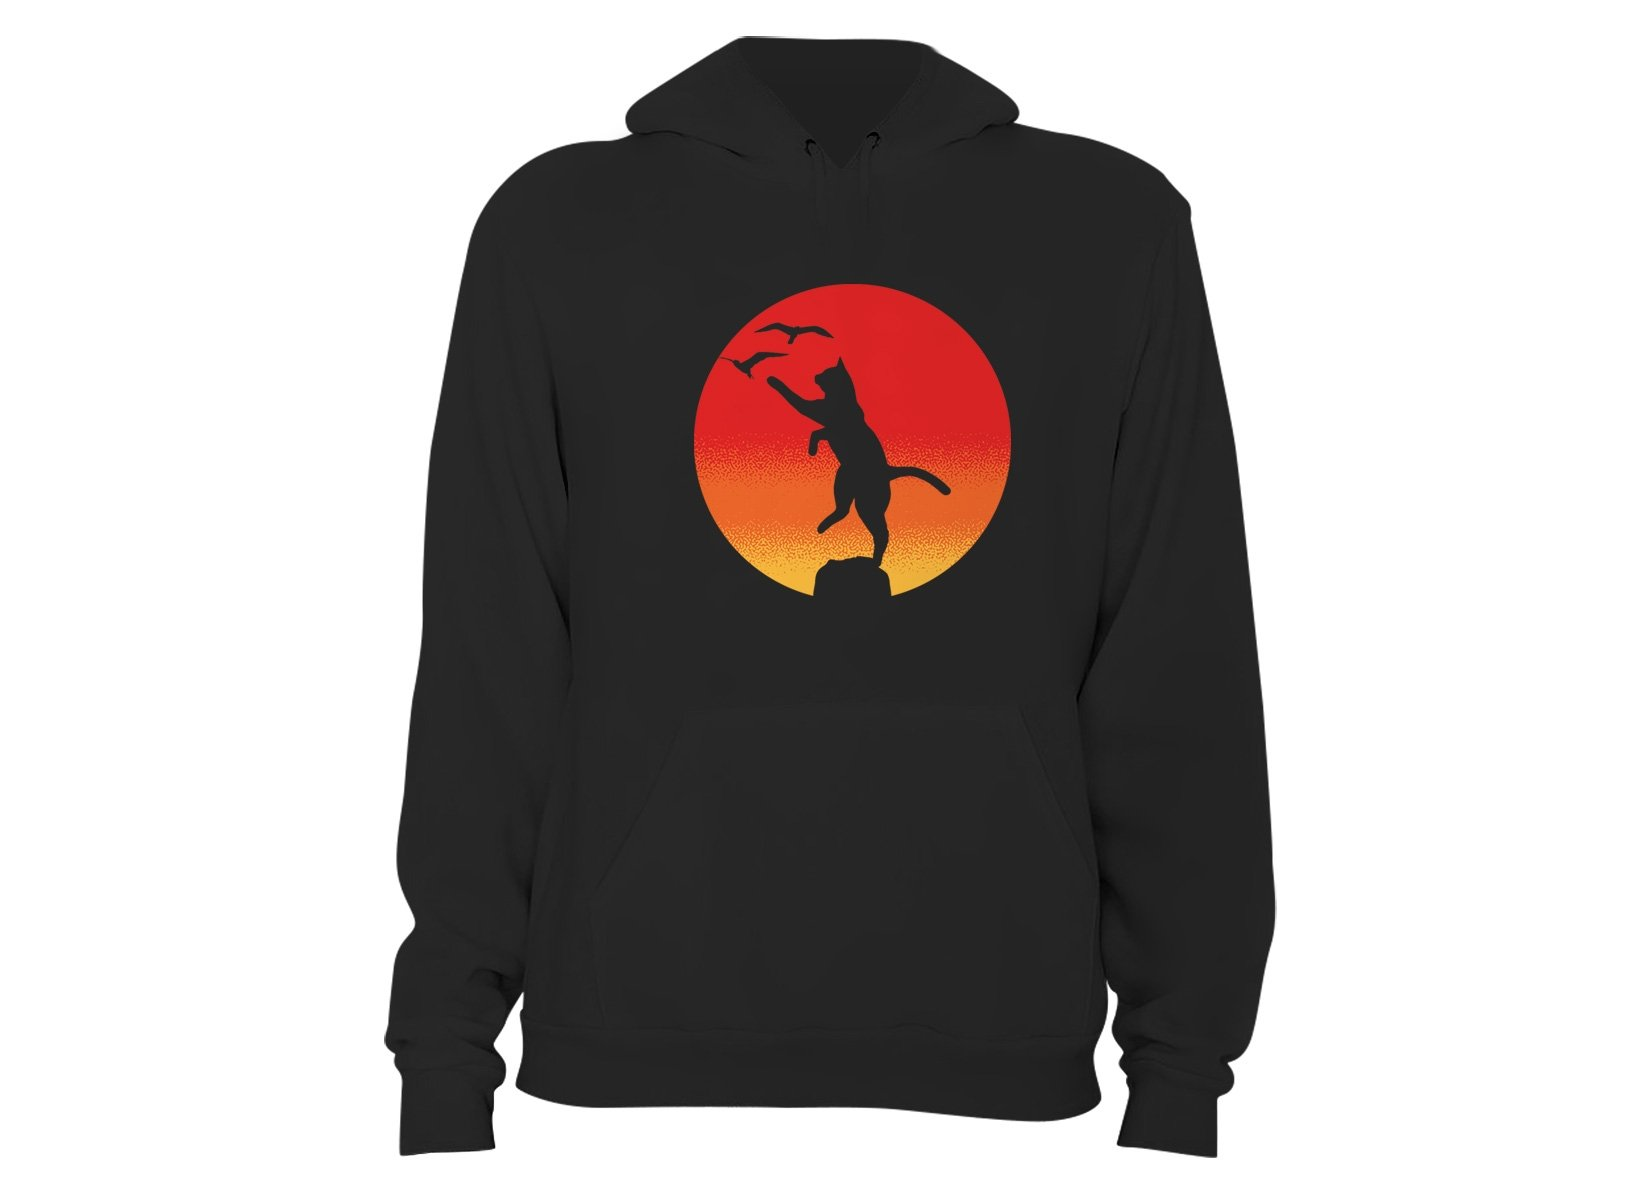 The Karate Cat on Hoodie